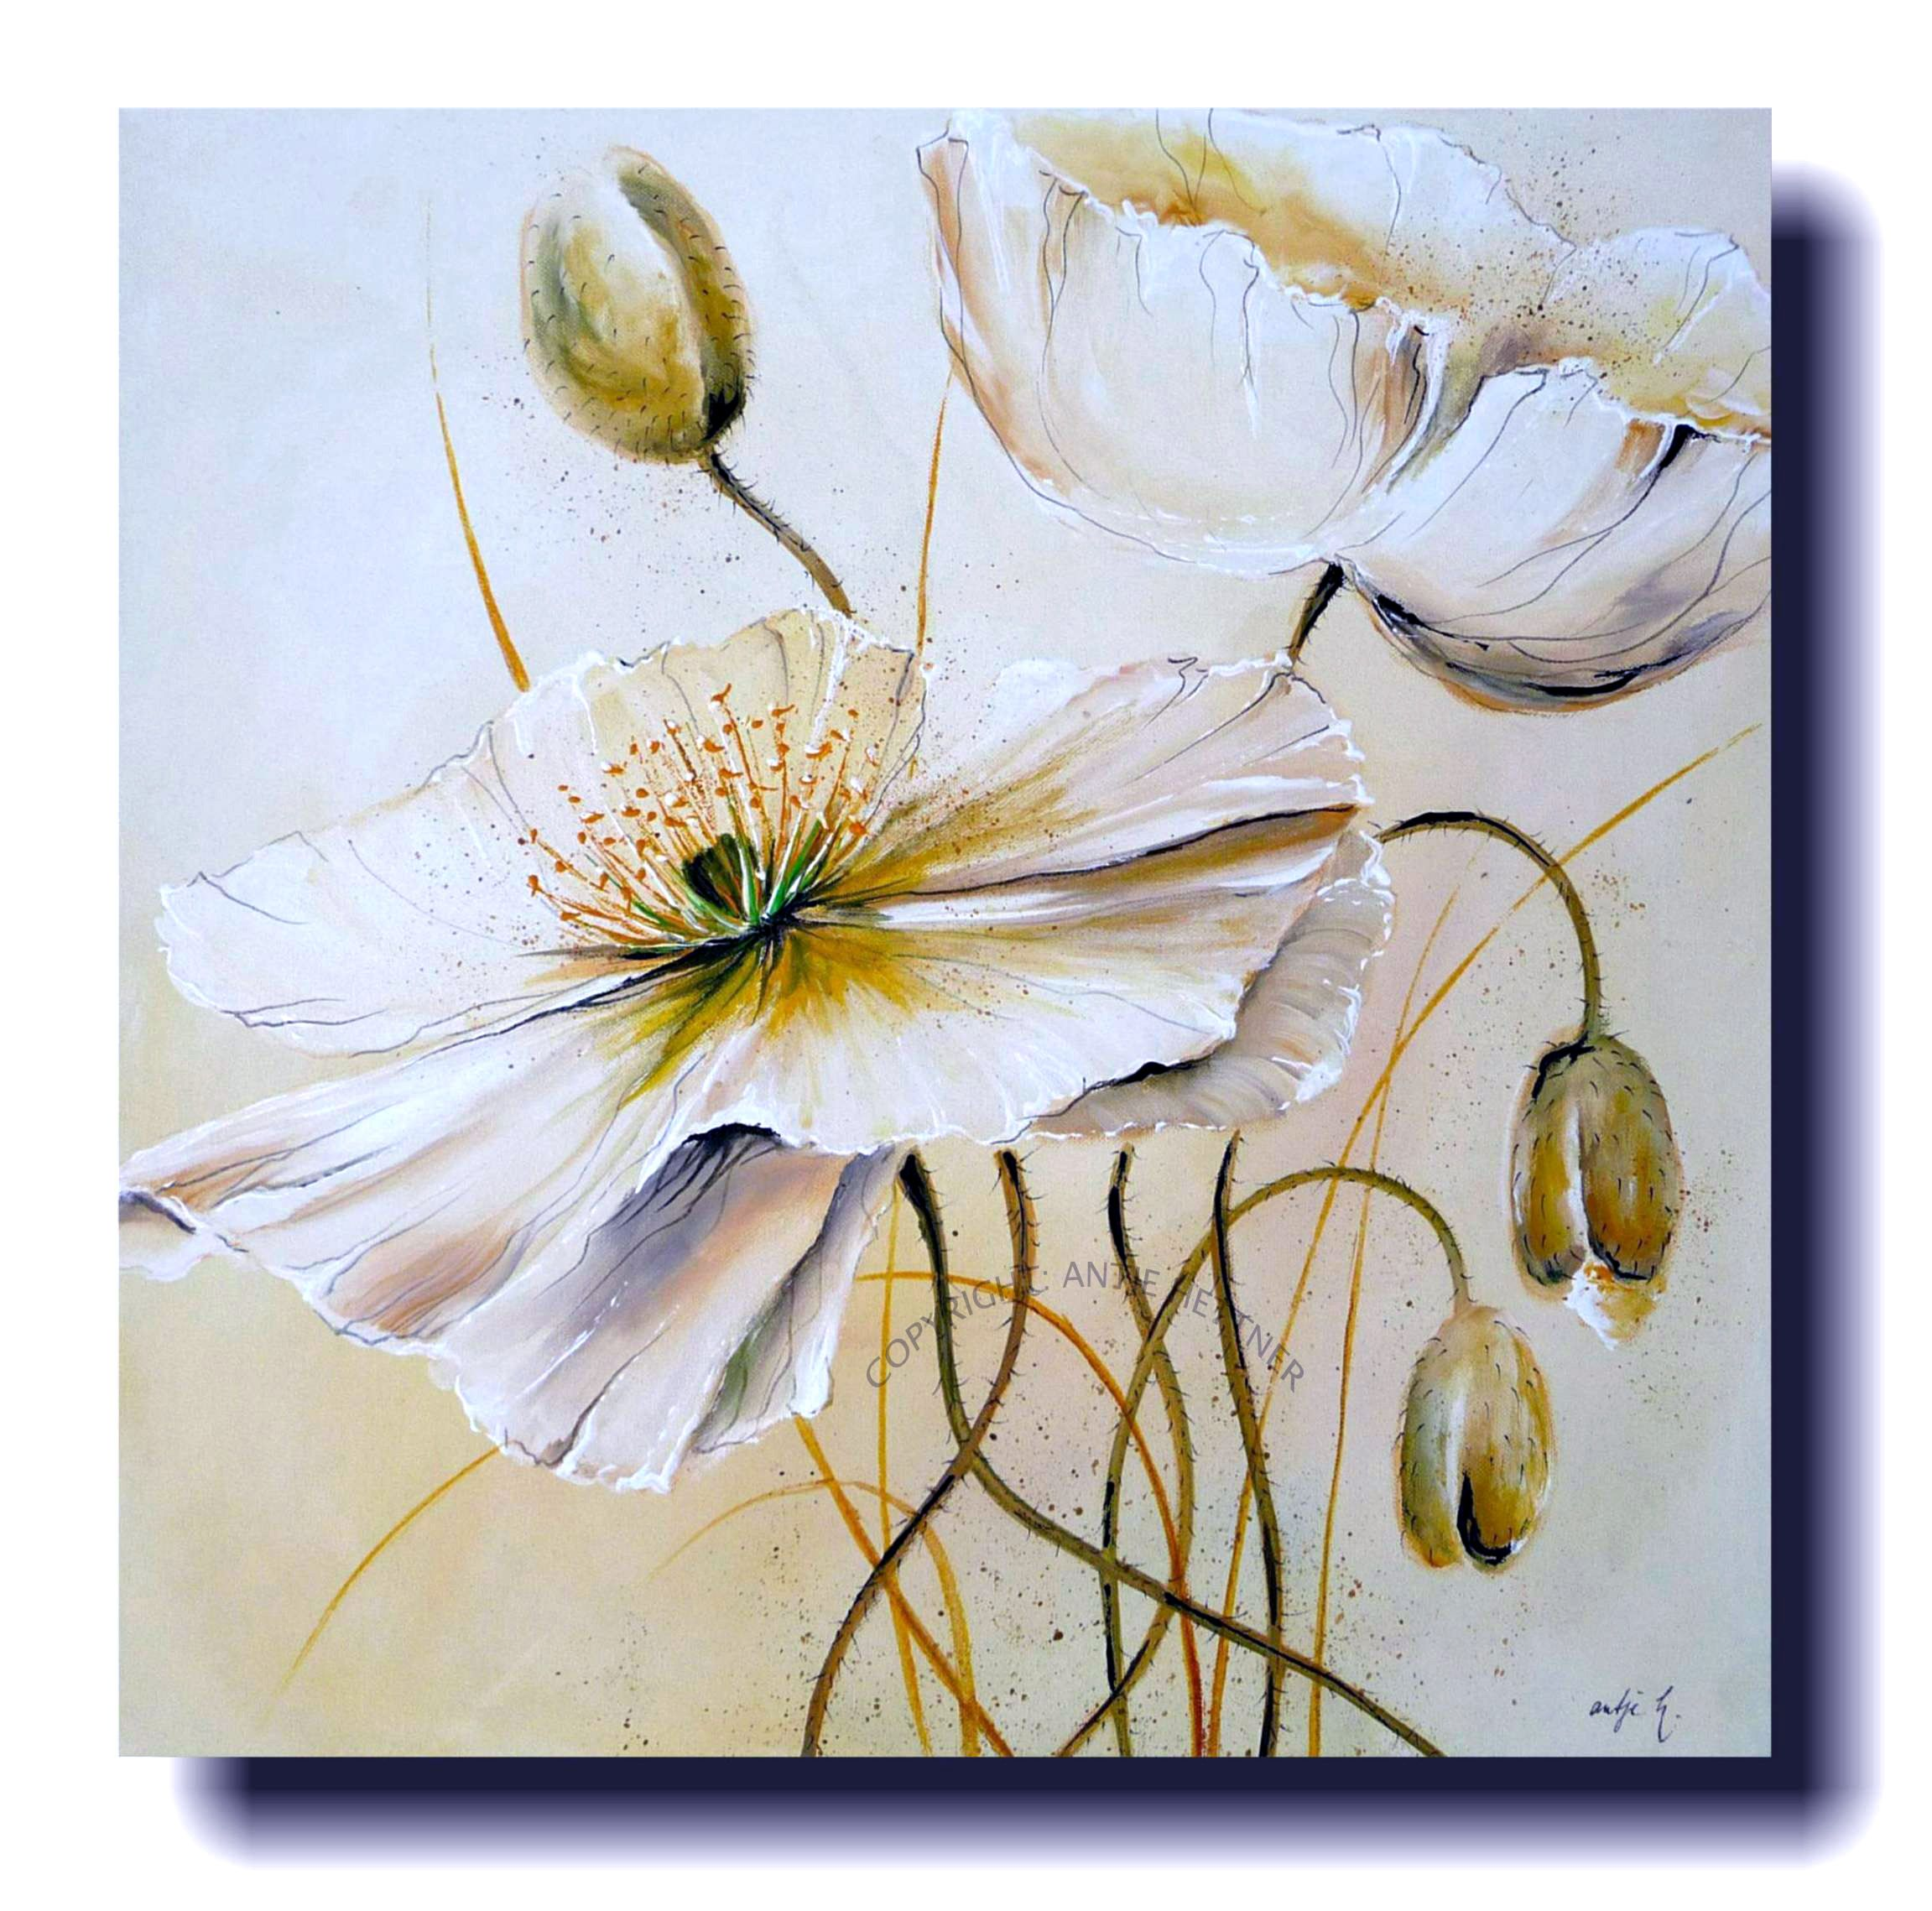 Poppies Like White Coffee Acrylic Art On Canvas Blumen Malen Blumen Malen Acryl Blumen Kunst